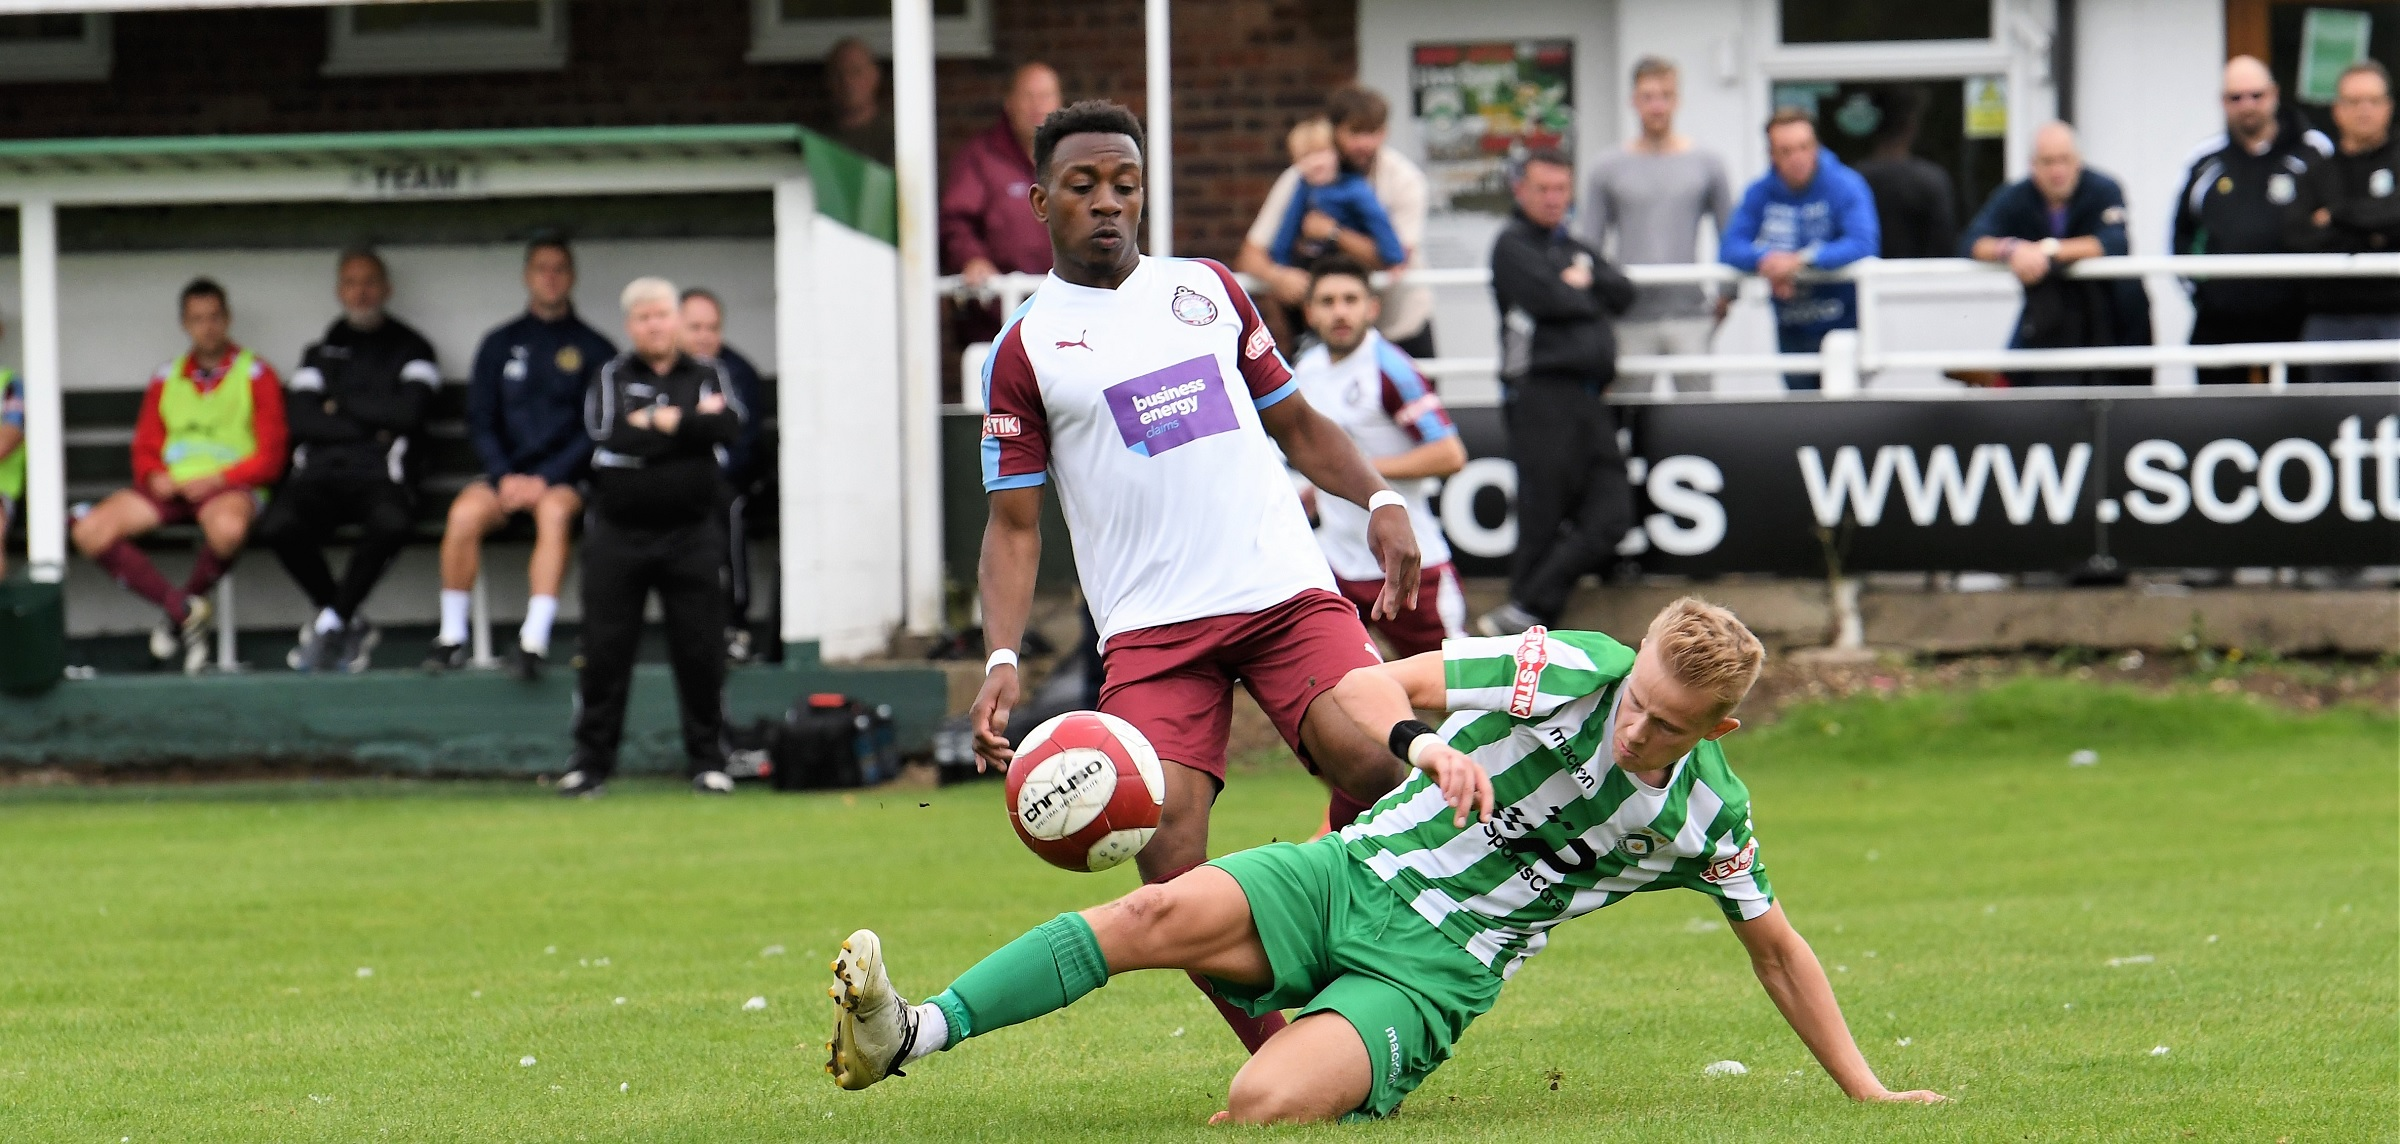 Mariners drawn at home to North Ferriby United in FA Trophy